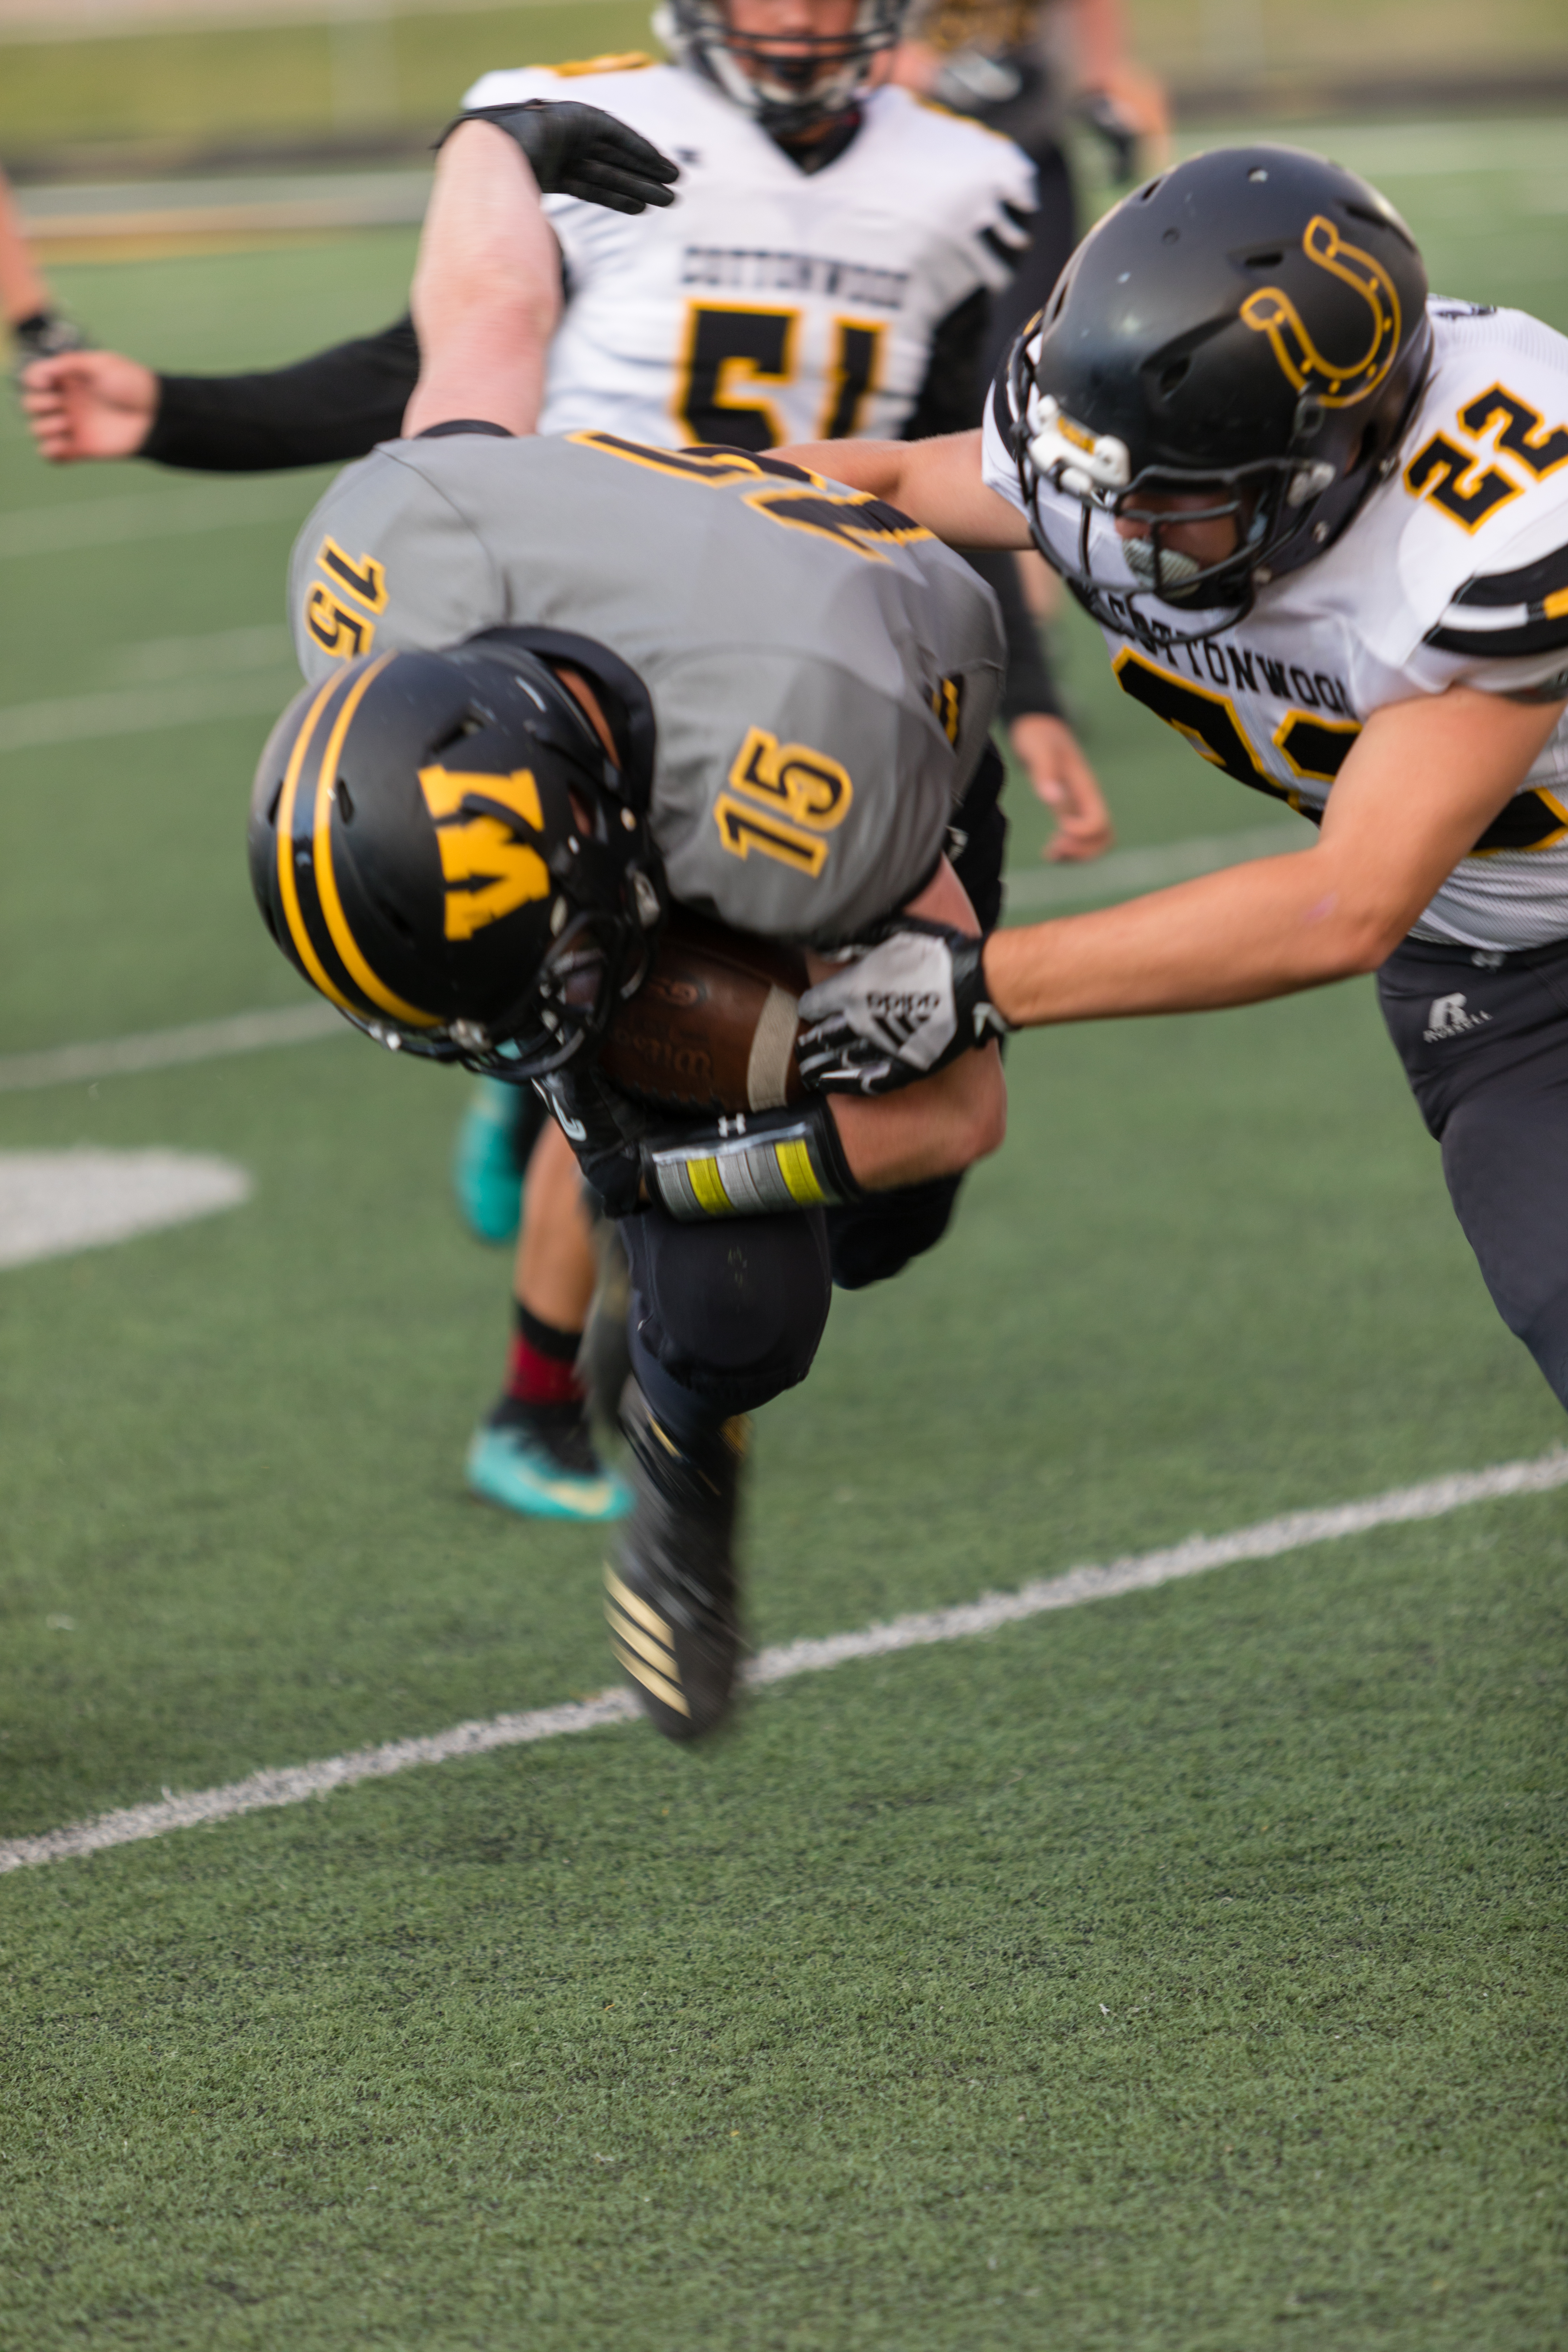 Wasatch Holds off Timpanogos 27-20